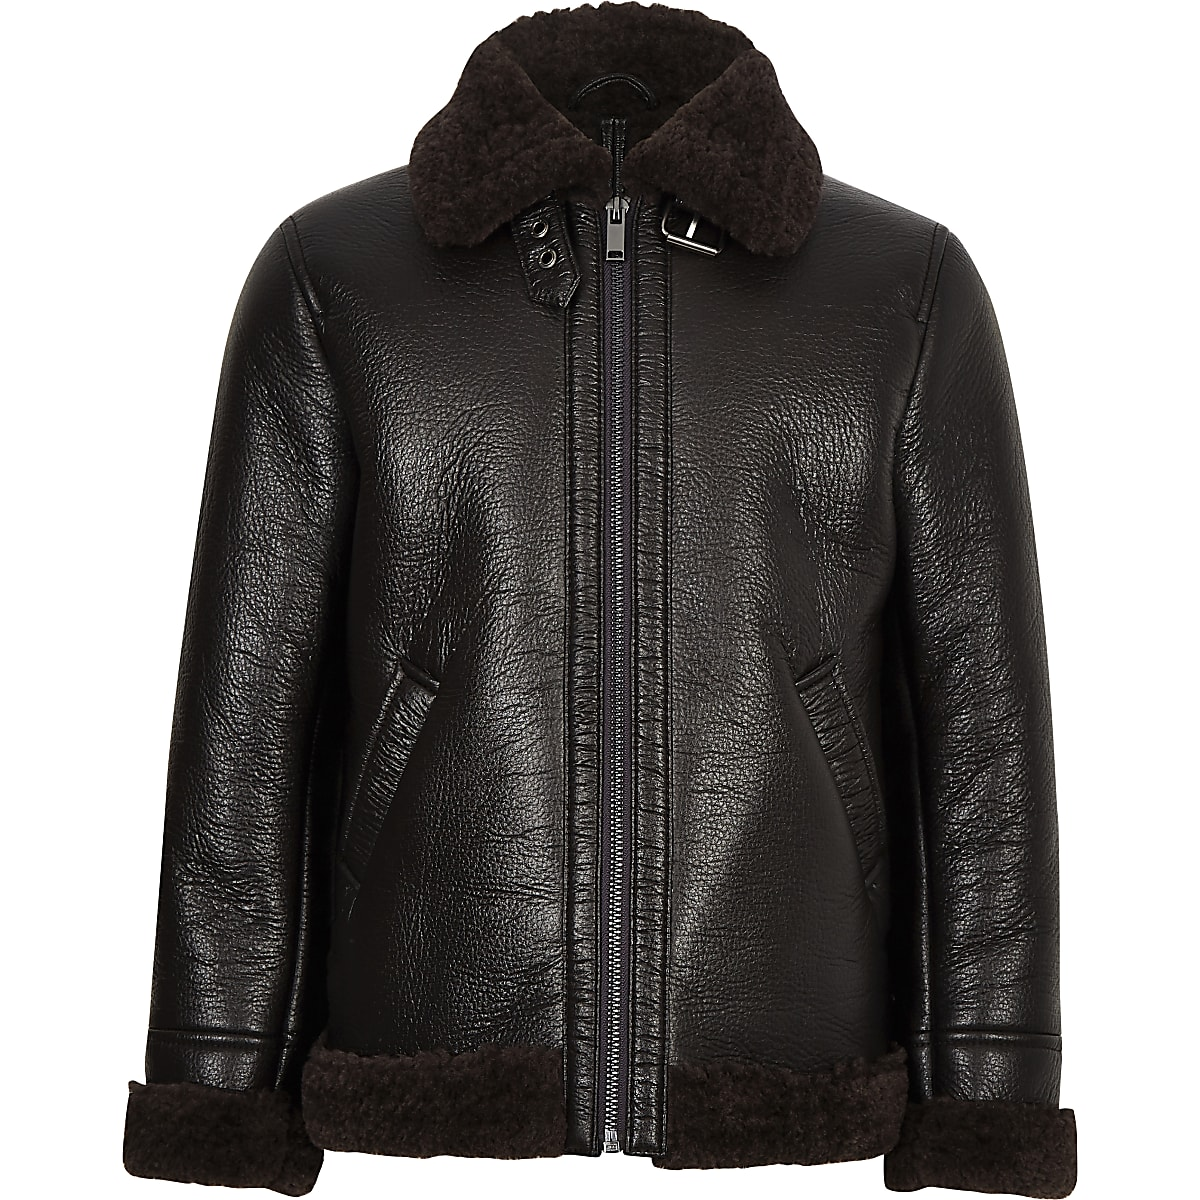 Boys dark brown faux shearling aviator jacket